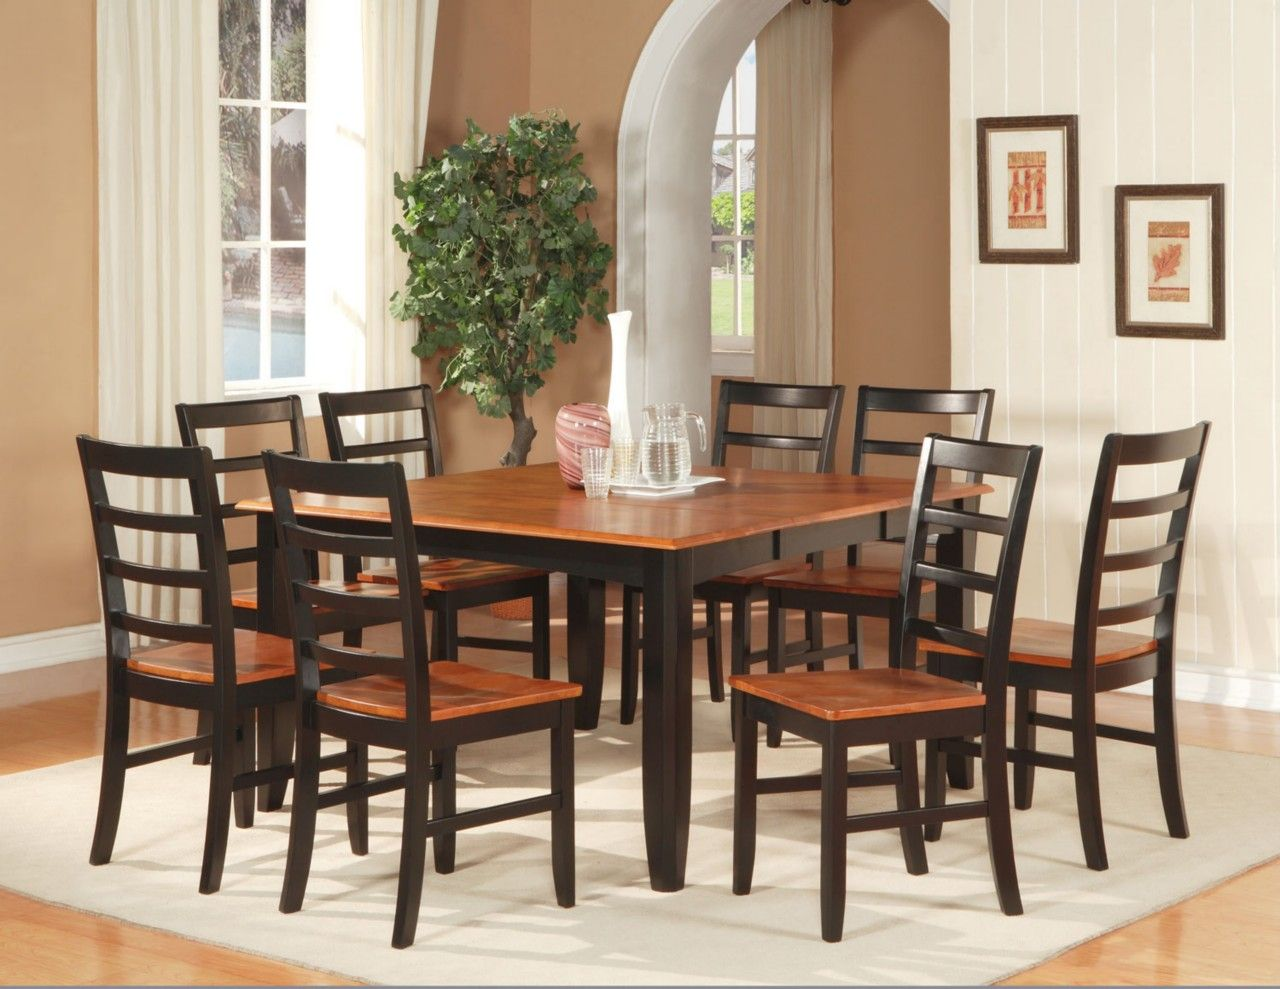 Dining Room Table Set Fascinating Dining Room Tables  Valuable Information To Get To Know More Design Decoration